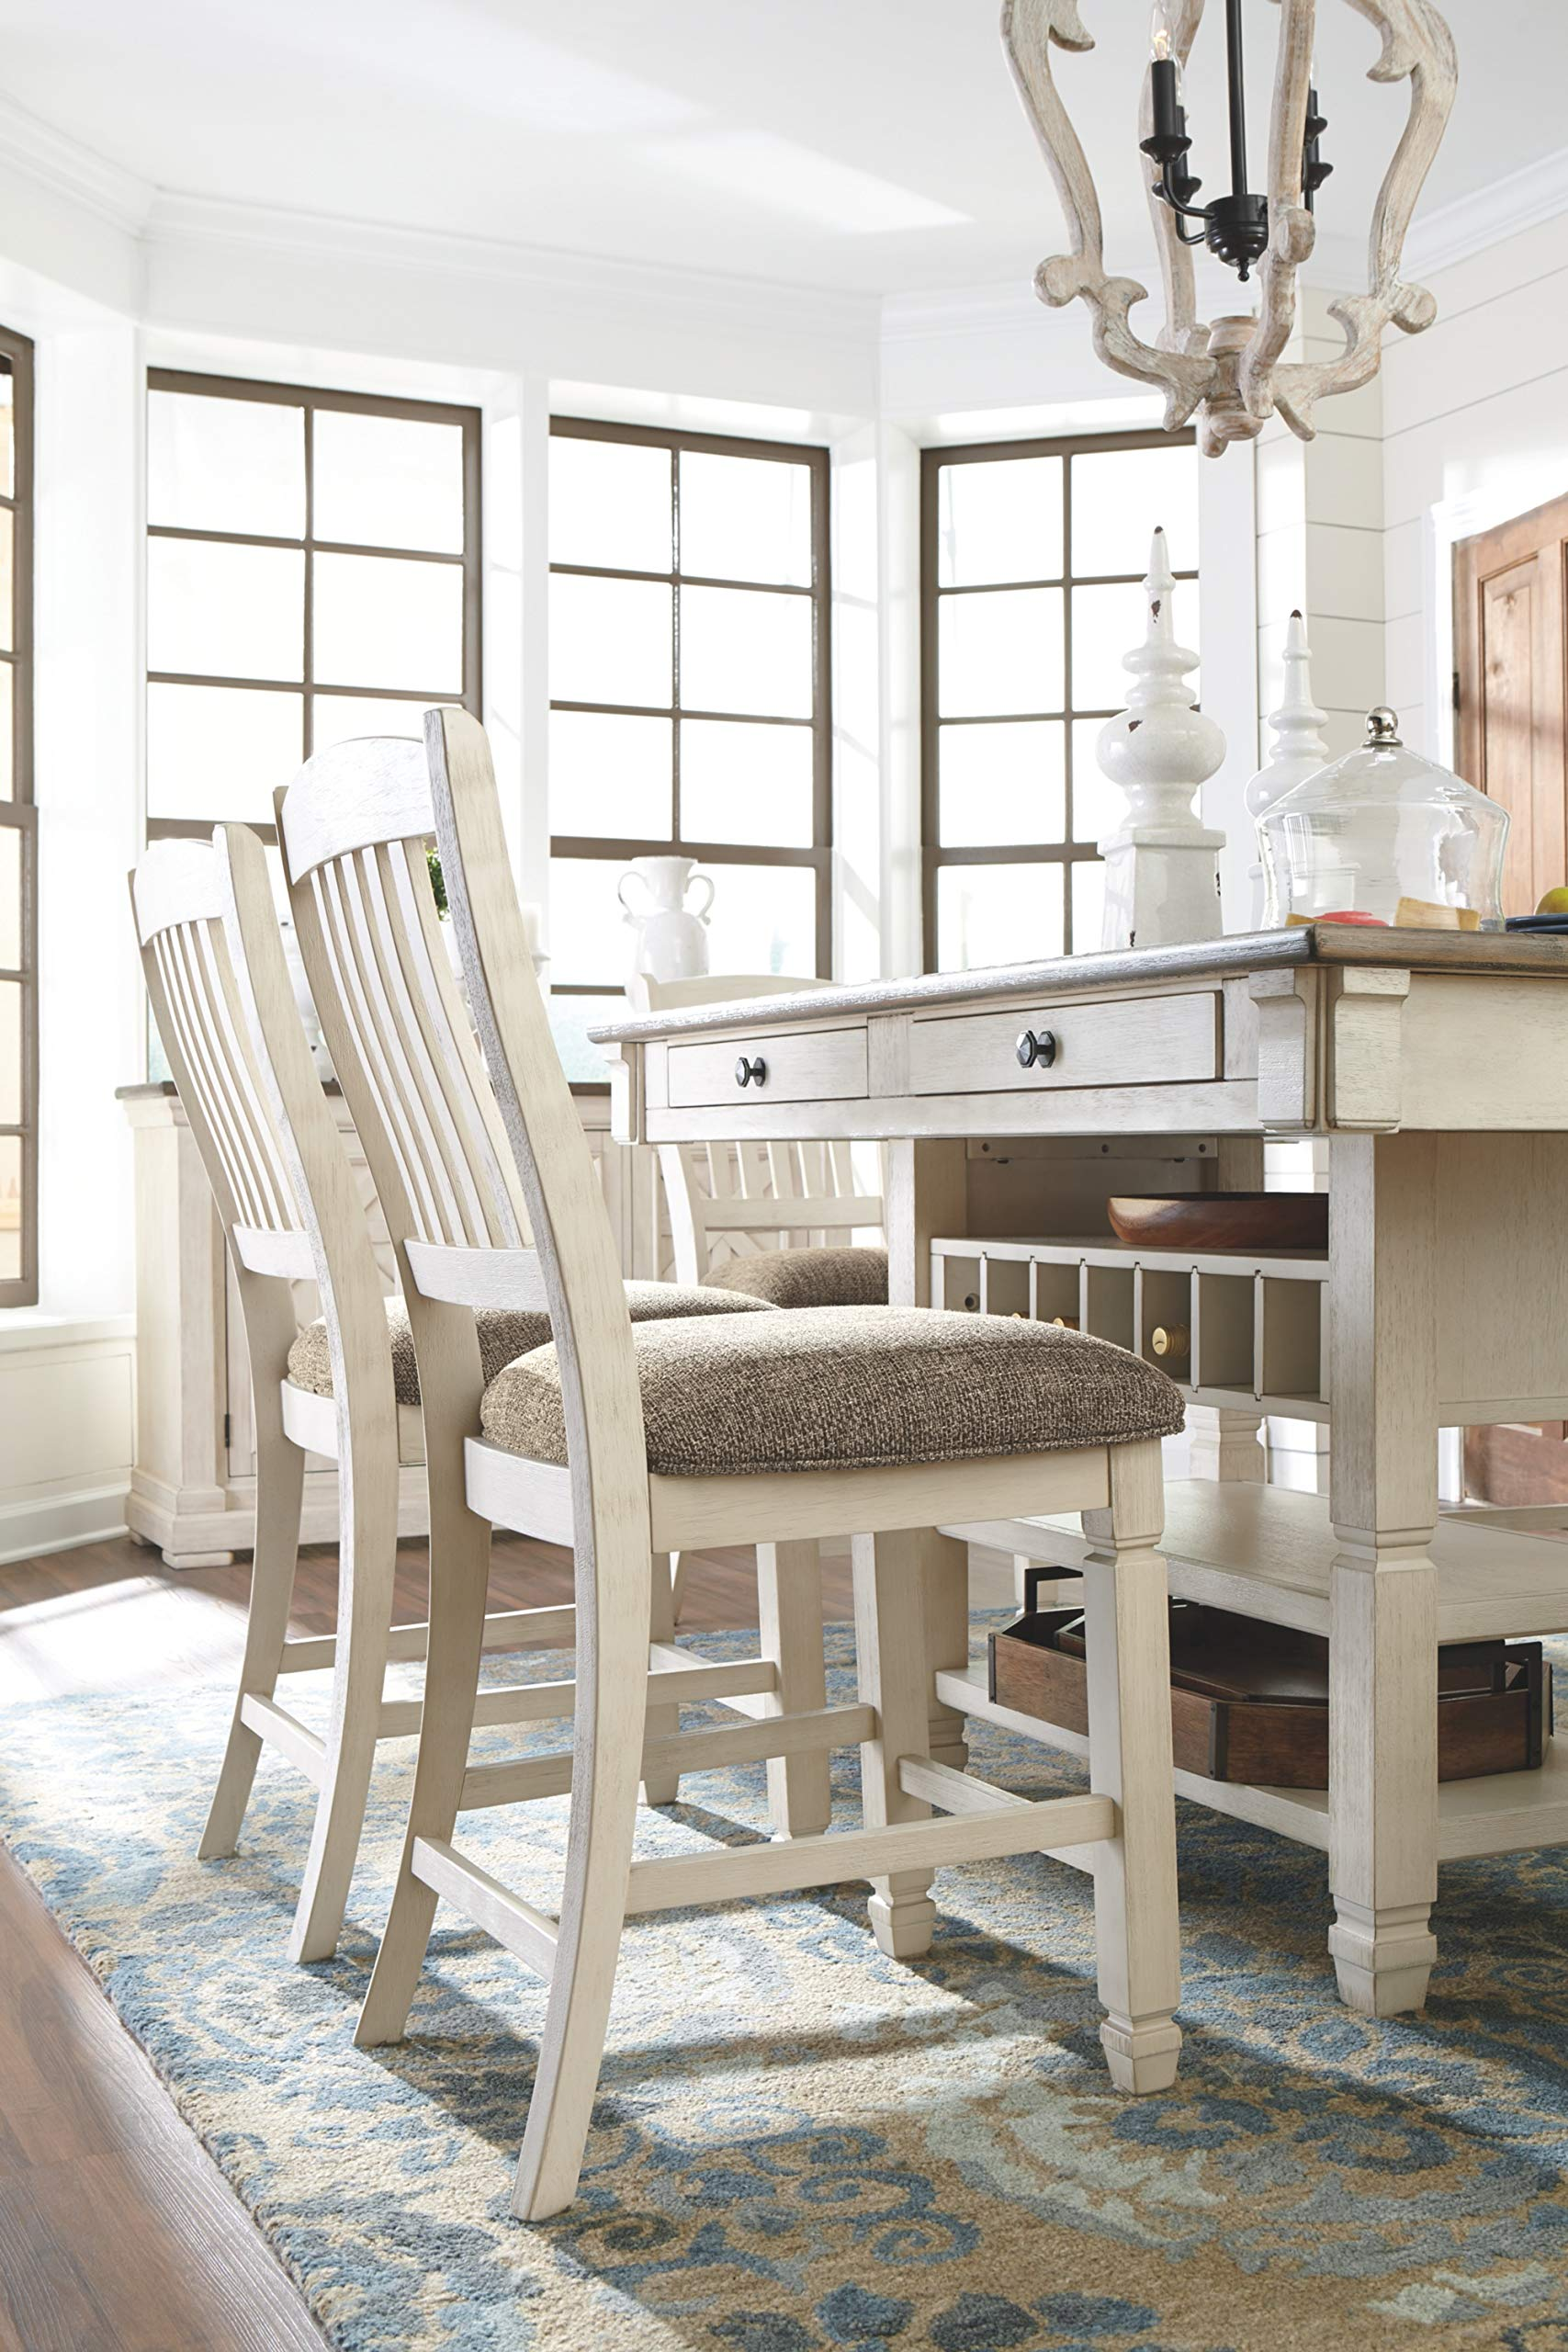 Ashley Furniture Signature Design - Bolanburg Counter Height Dining Room Table - Antique White by Signature Design by Ashley (Image #9)